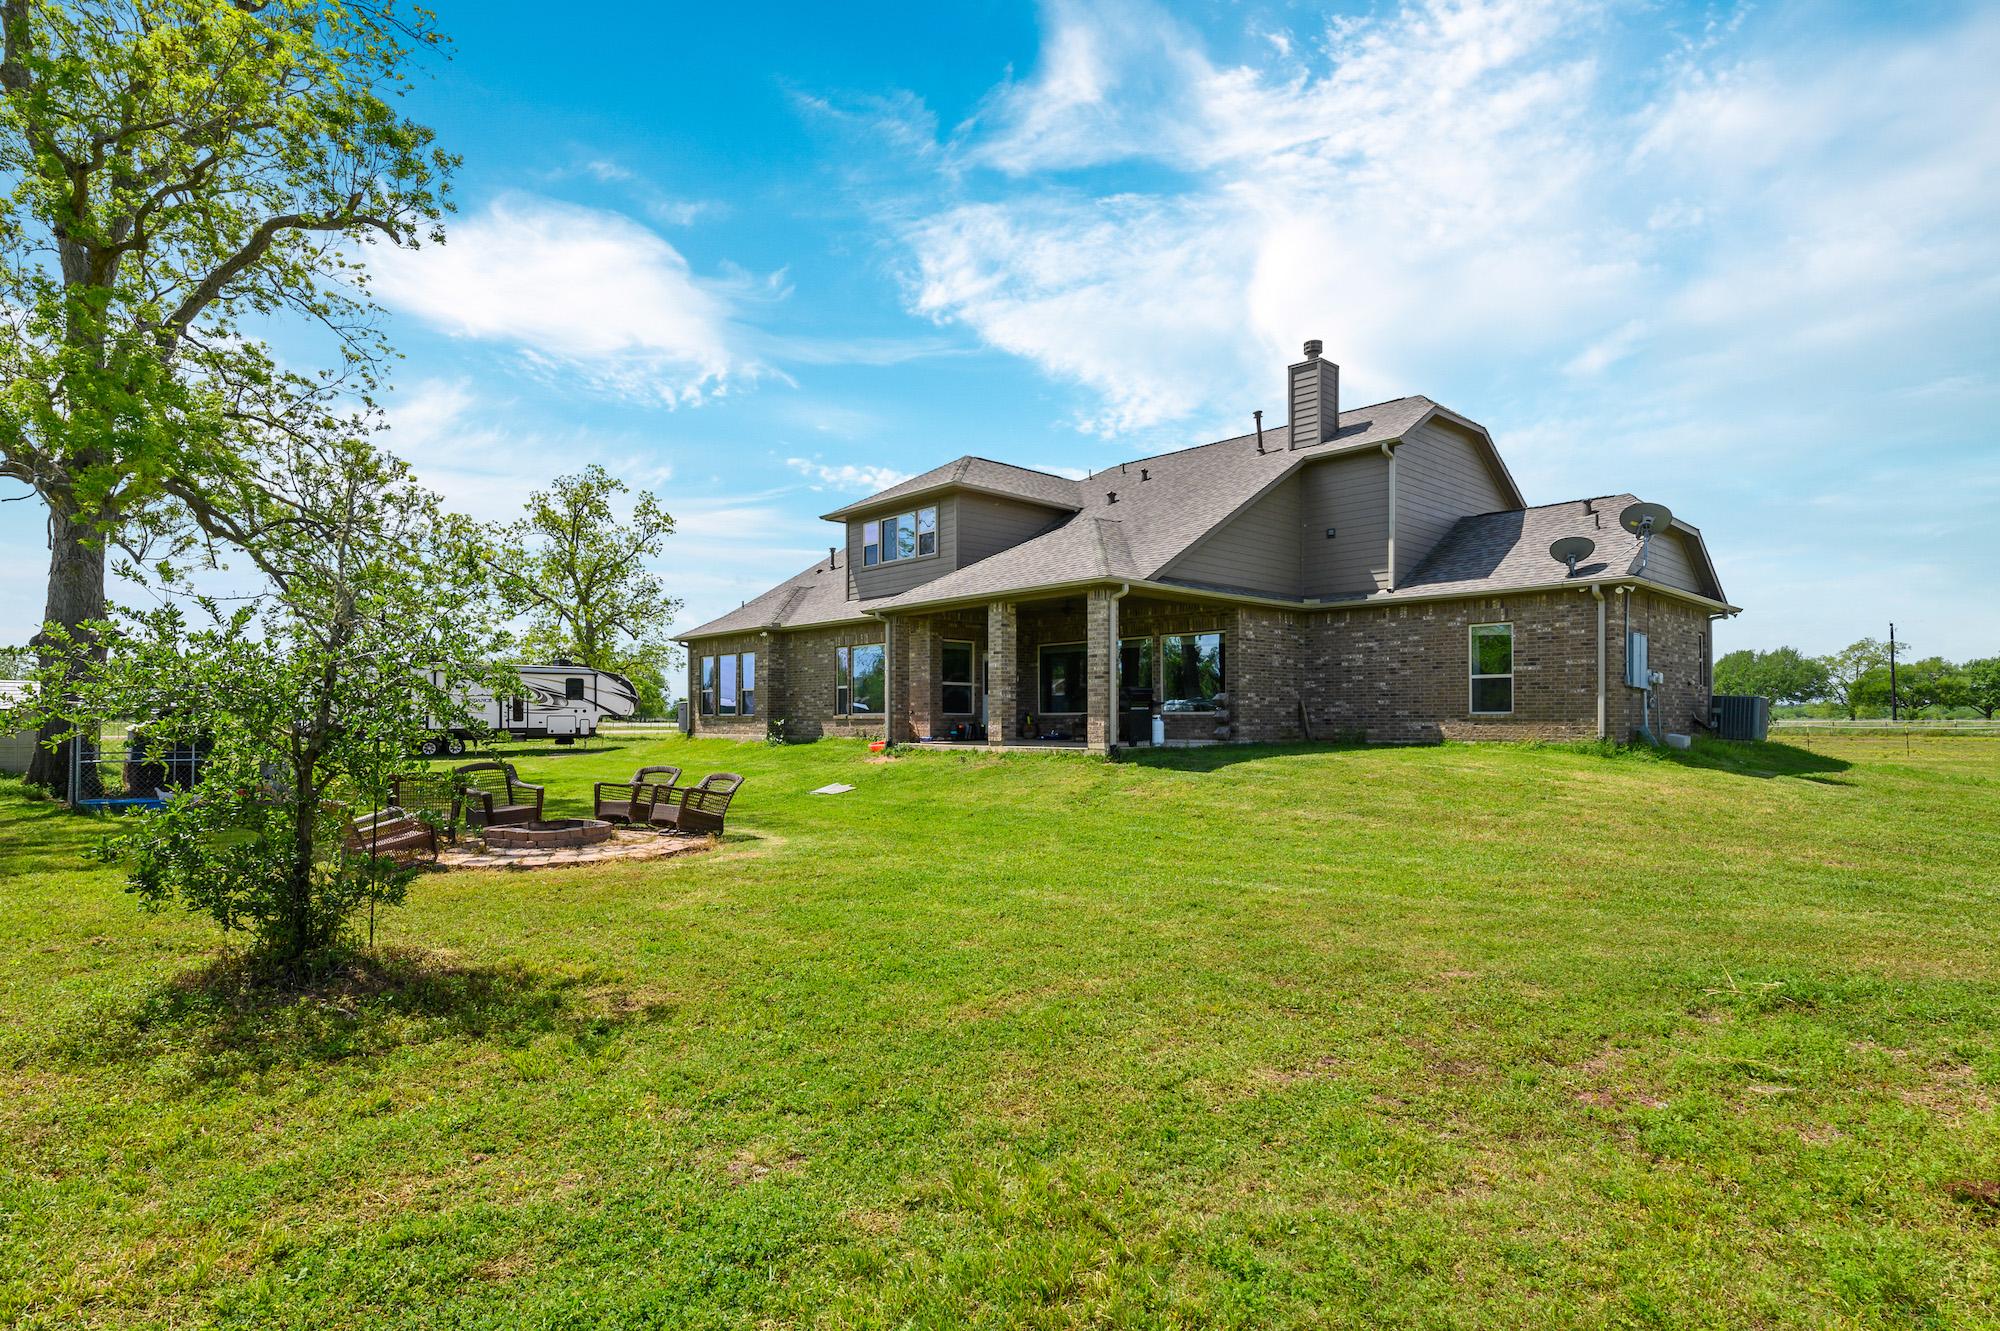 Custom Country Home with Acreage in Sealy - Image 46 of 46